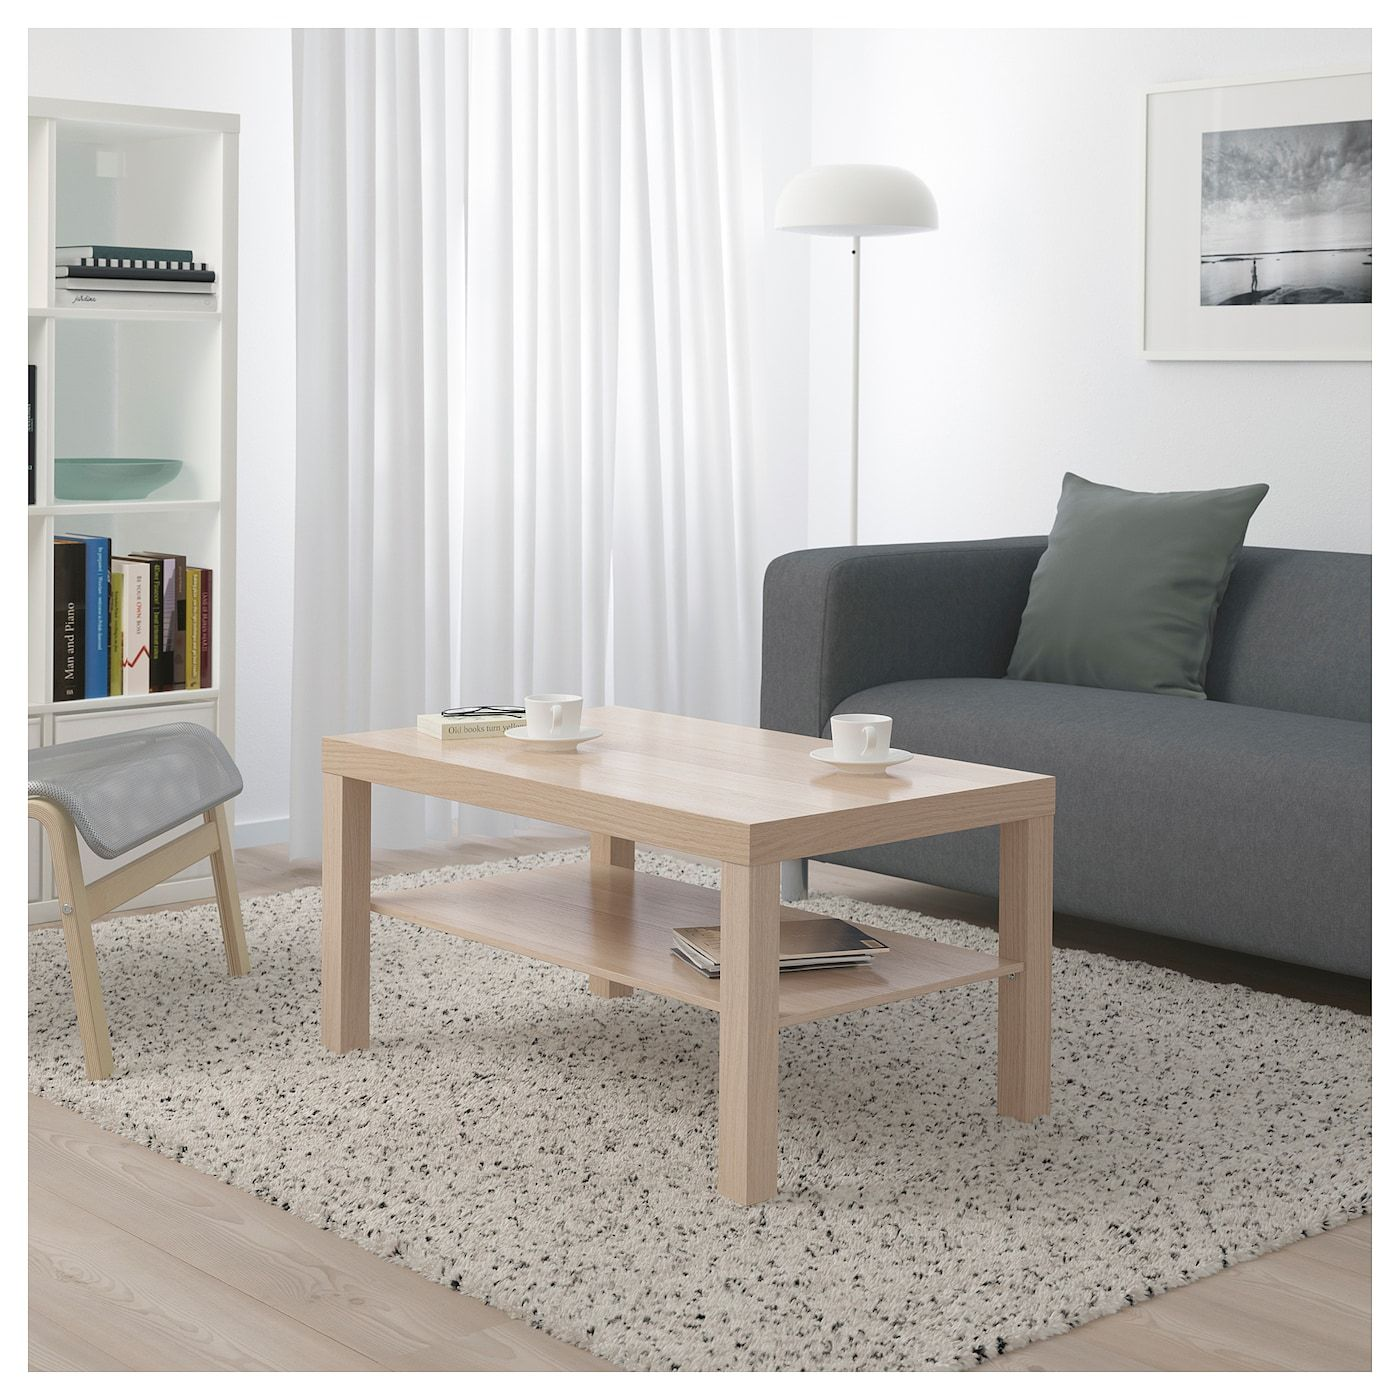 Lack Coffee Table White Stained Oak Effect 35 3 8x21 5 8 Ikea In 2021 Ikea Lack Coffee Table Lack Coffee Table Ikea Coffee Table [ 1400 x 1400 Pixel ]